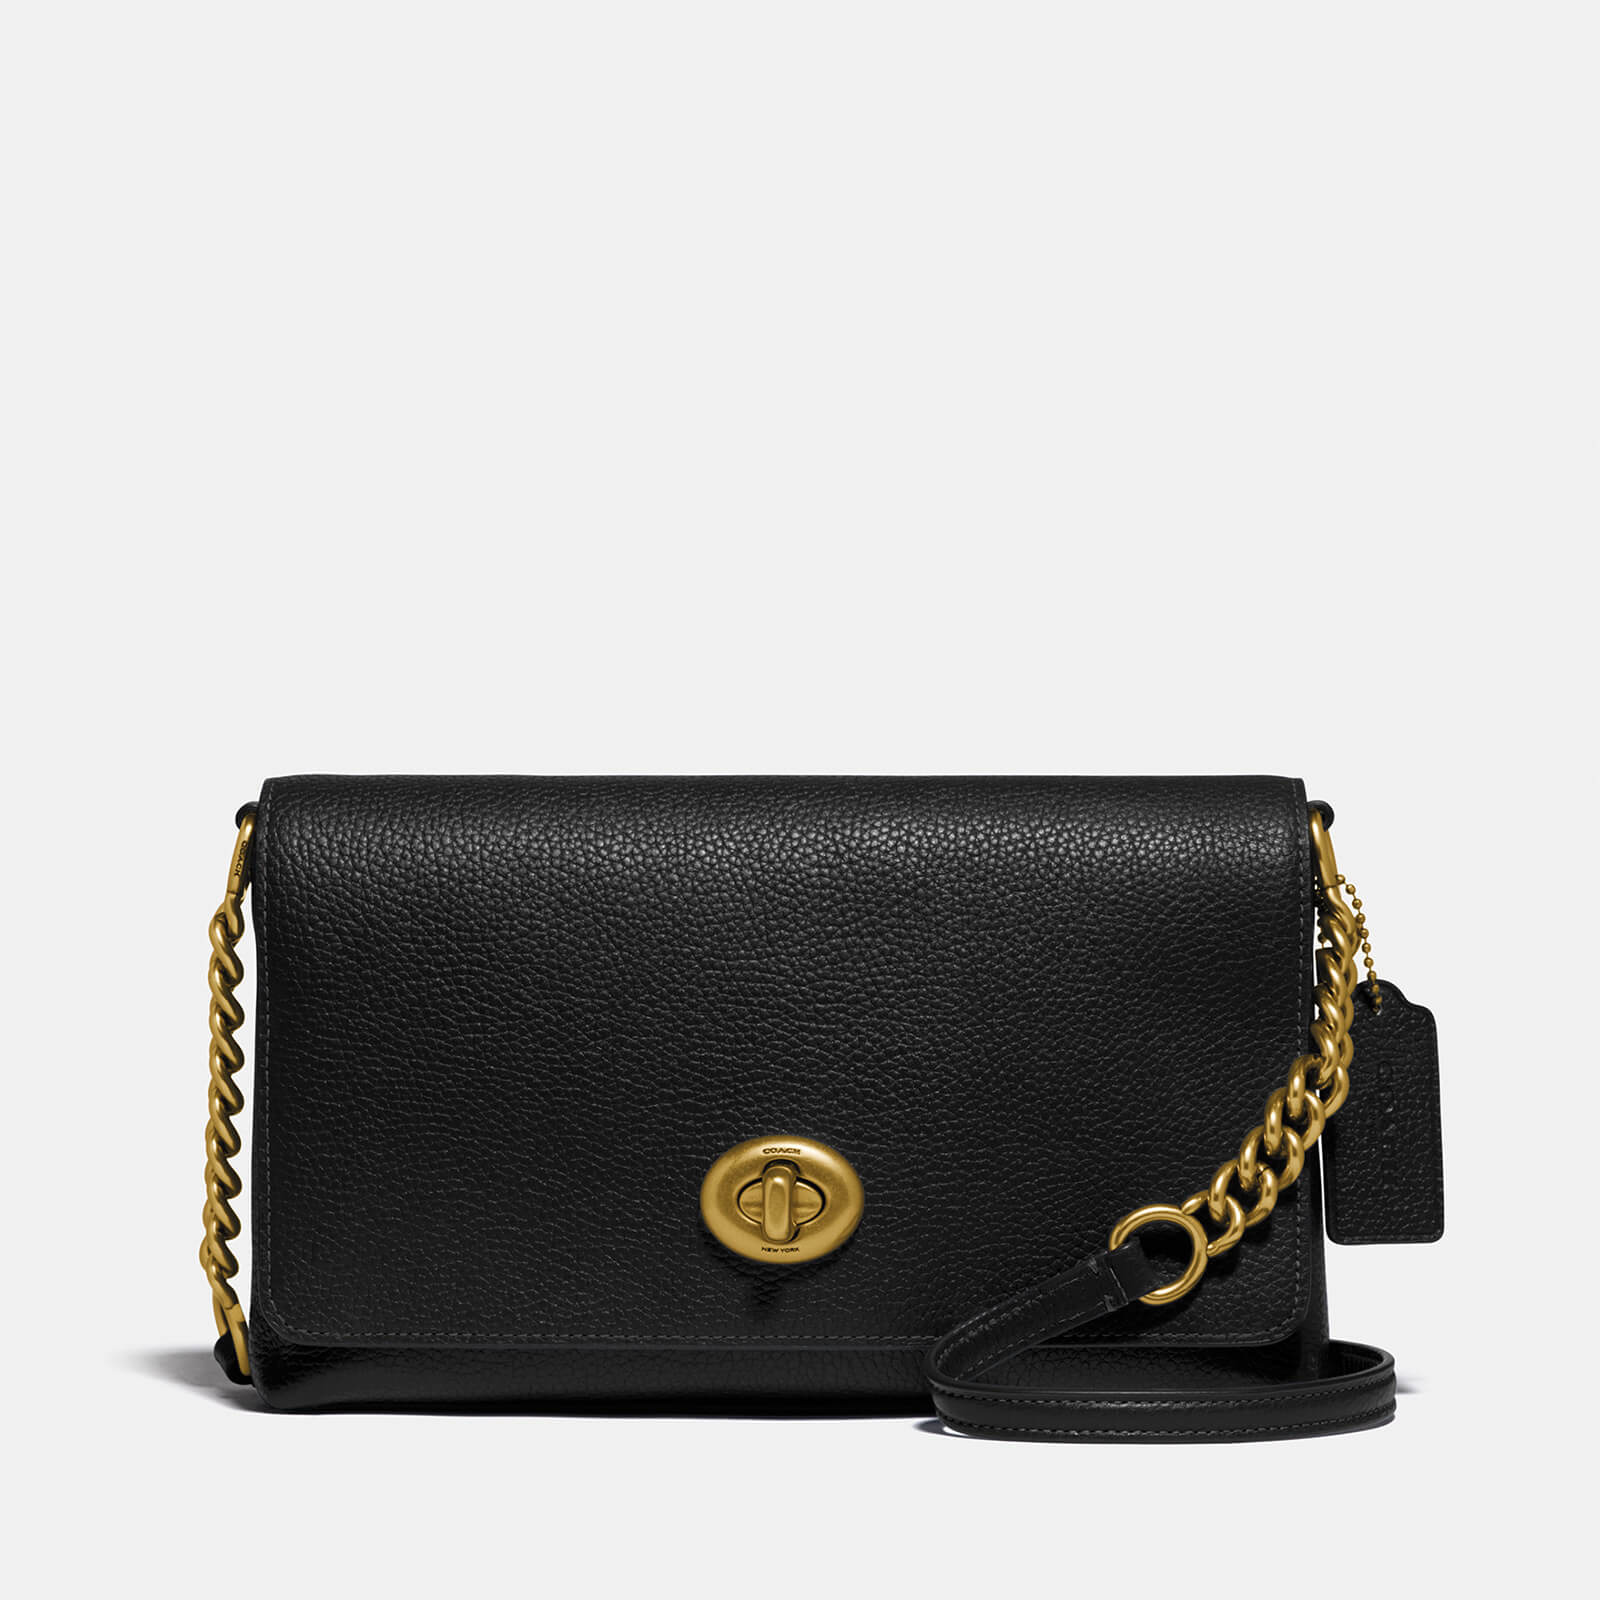 Coach Women's Excl Whsl Polished Pebble Crsstown Xbody Bag - Black